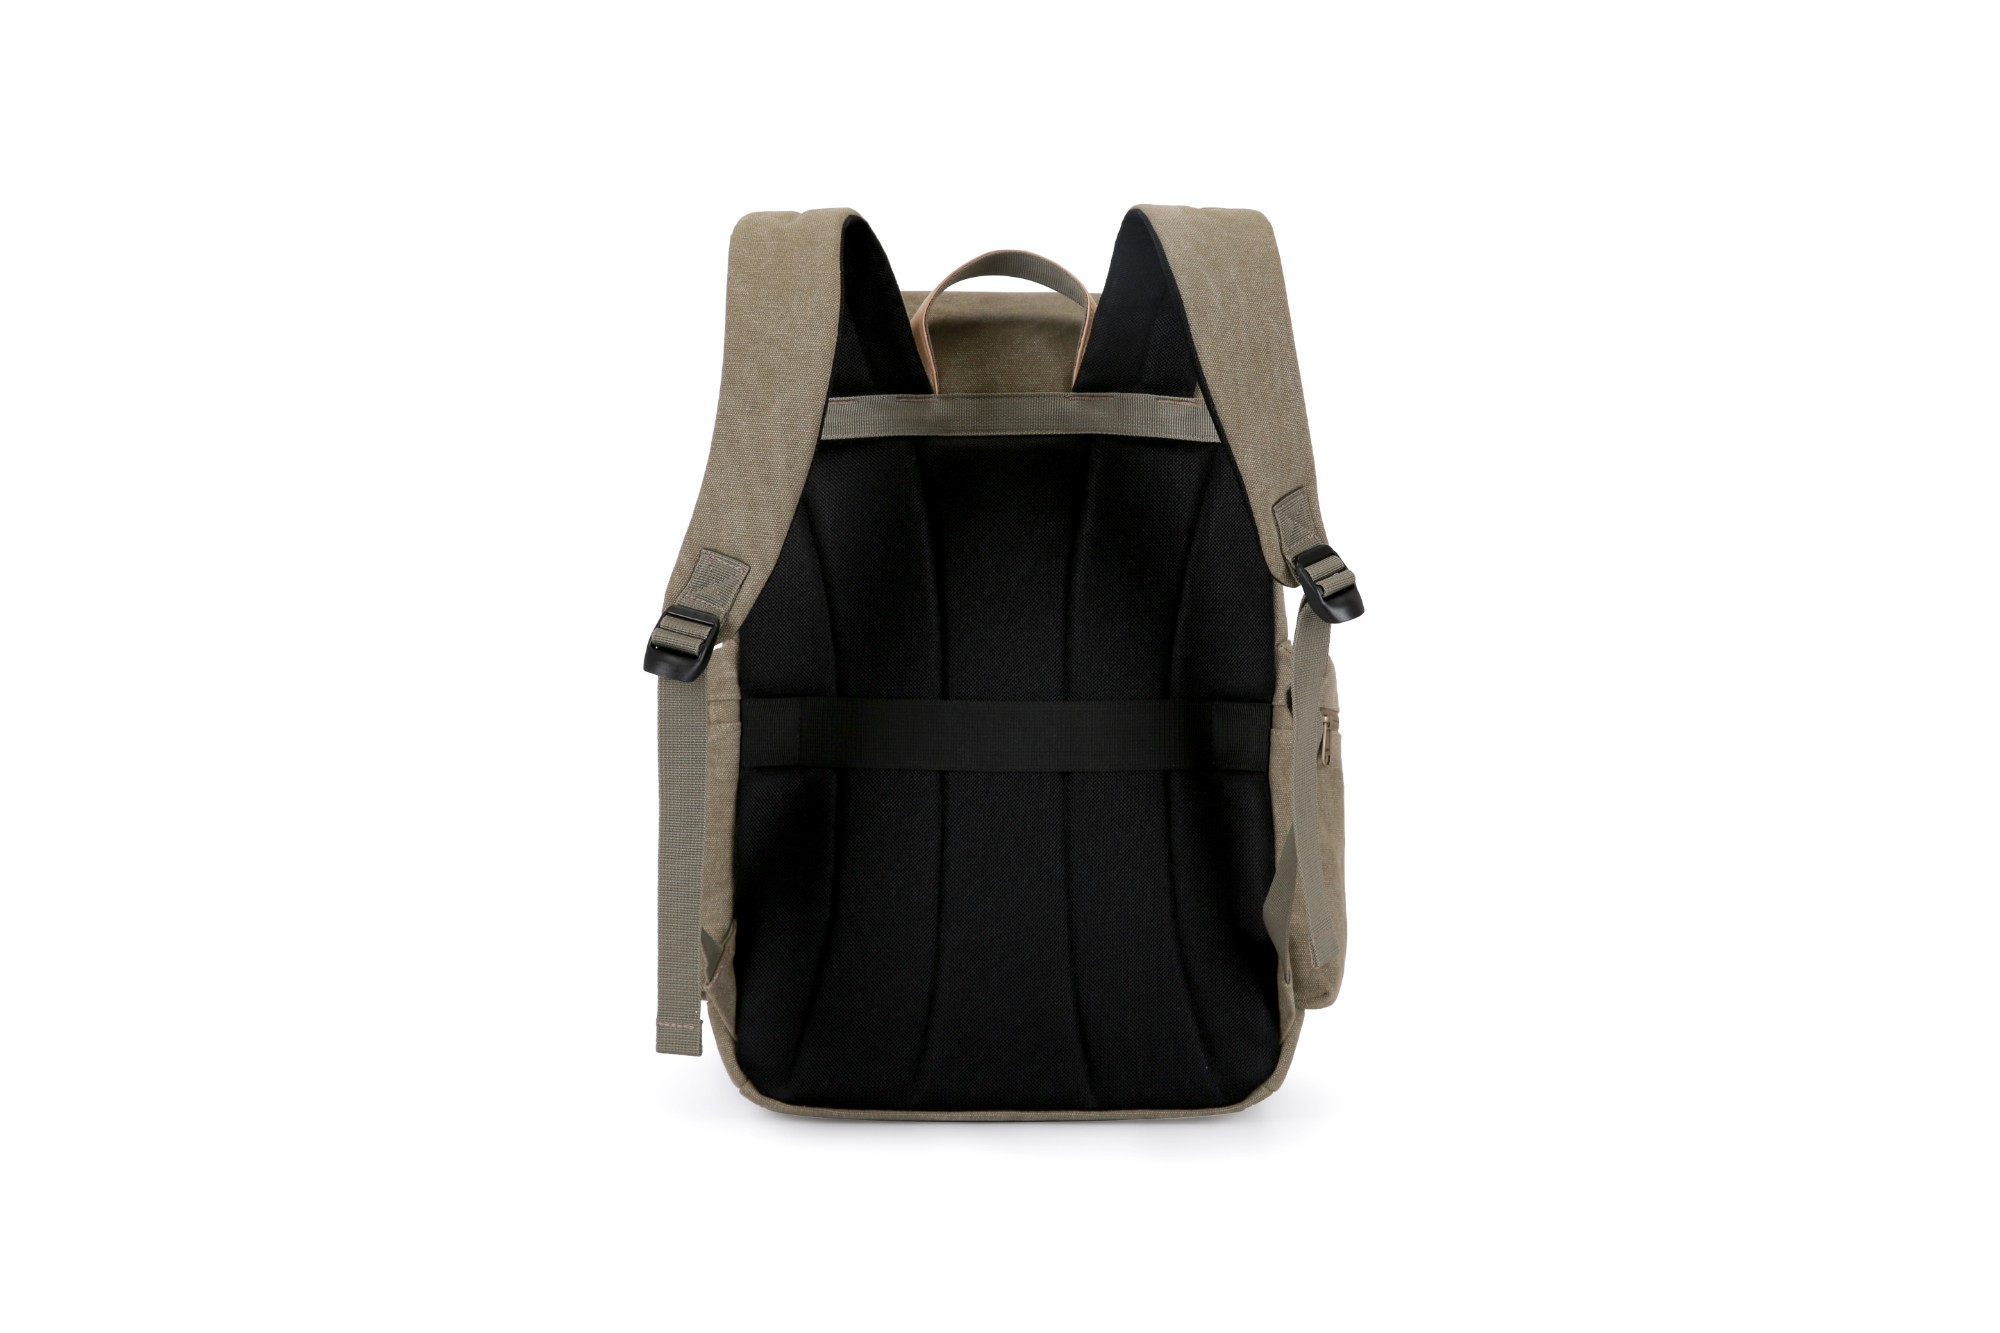 Leisure Backpack Green (F) Manufacturers, Leisure Backpack Green (F) Factory, Supply Leisure Backpack Green (F)